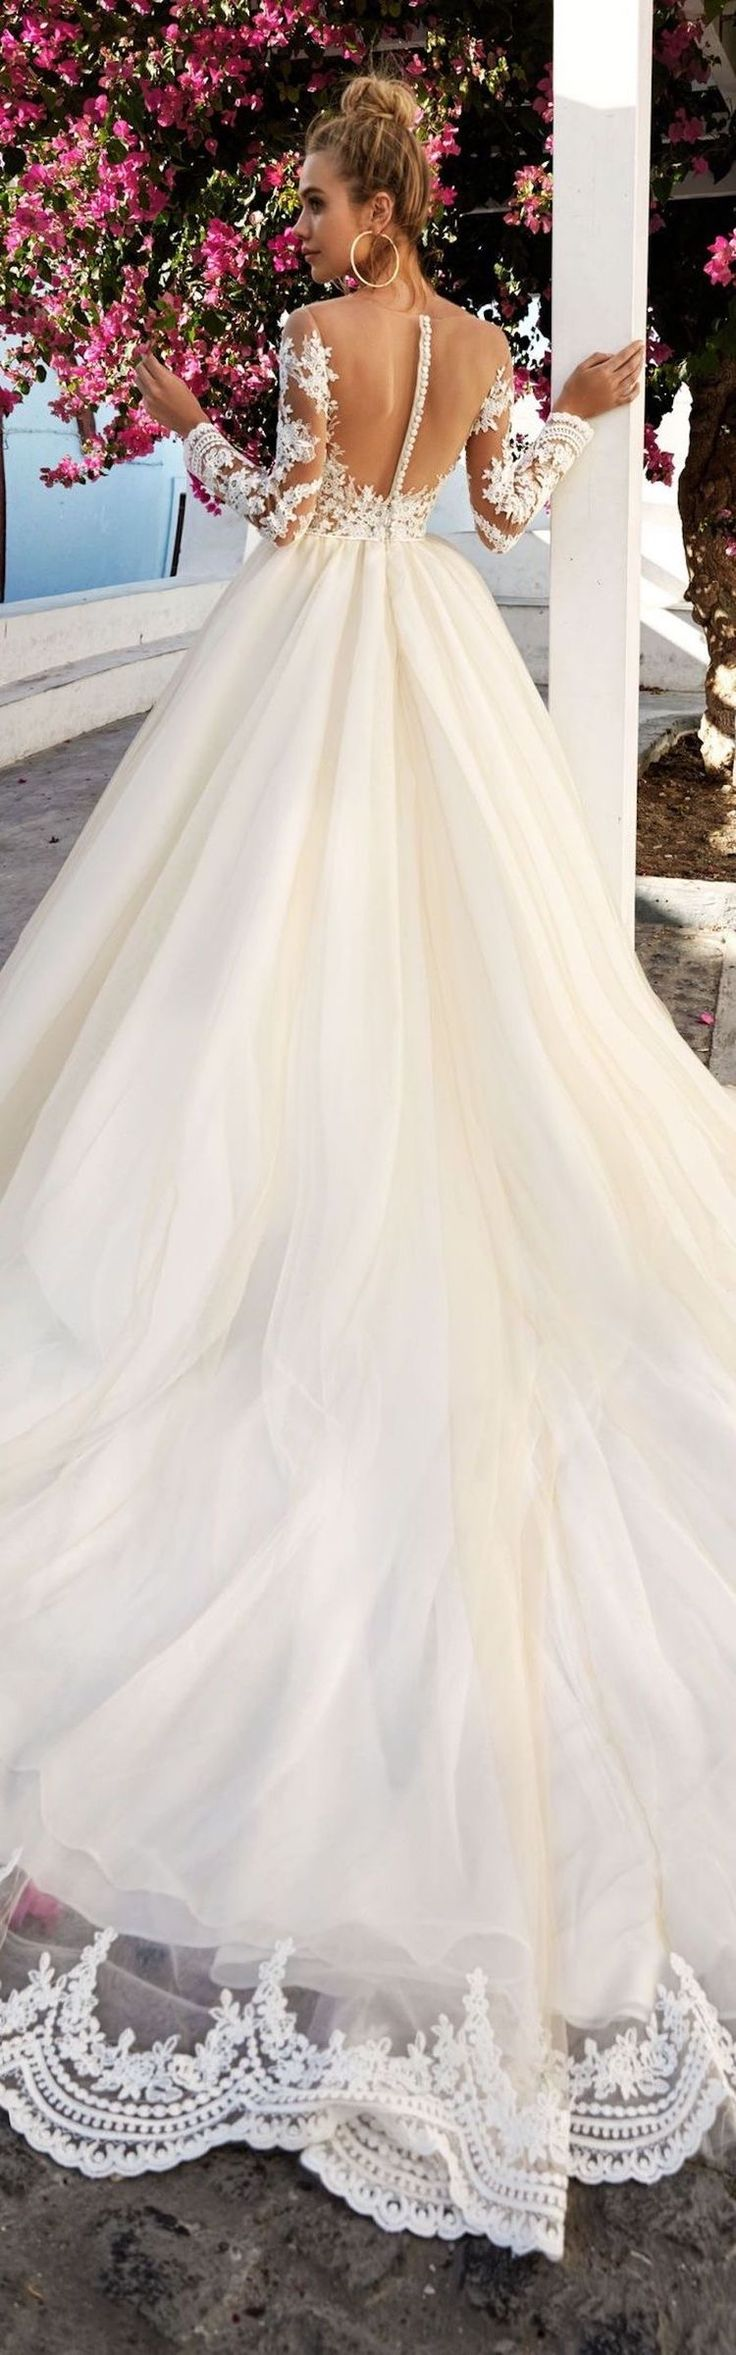 wedding dress hire cape town northern suburbs%0A the back and train is everything    best wedding dresses    Eva Lendel Wedding  Dress Collection